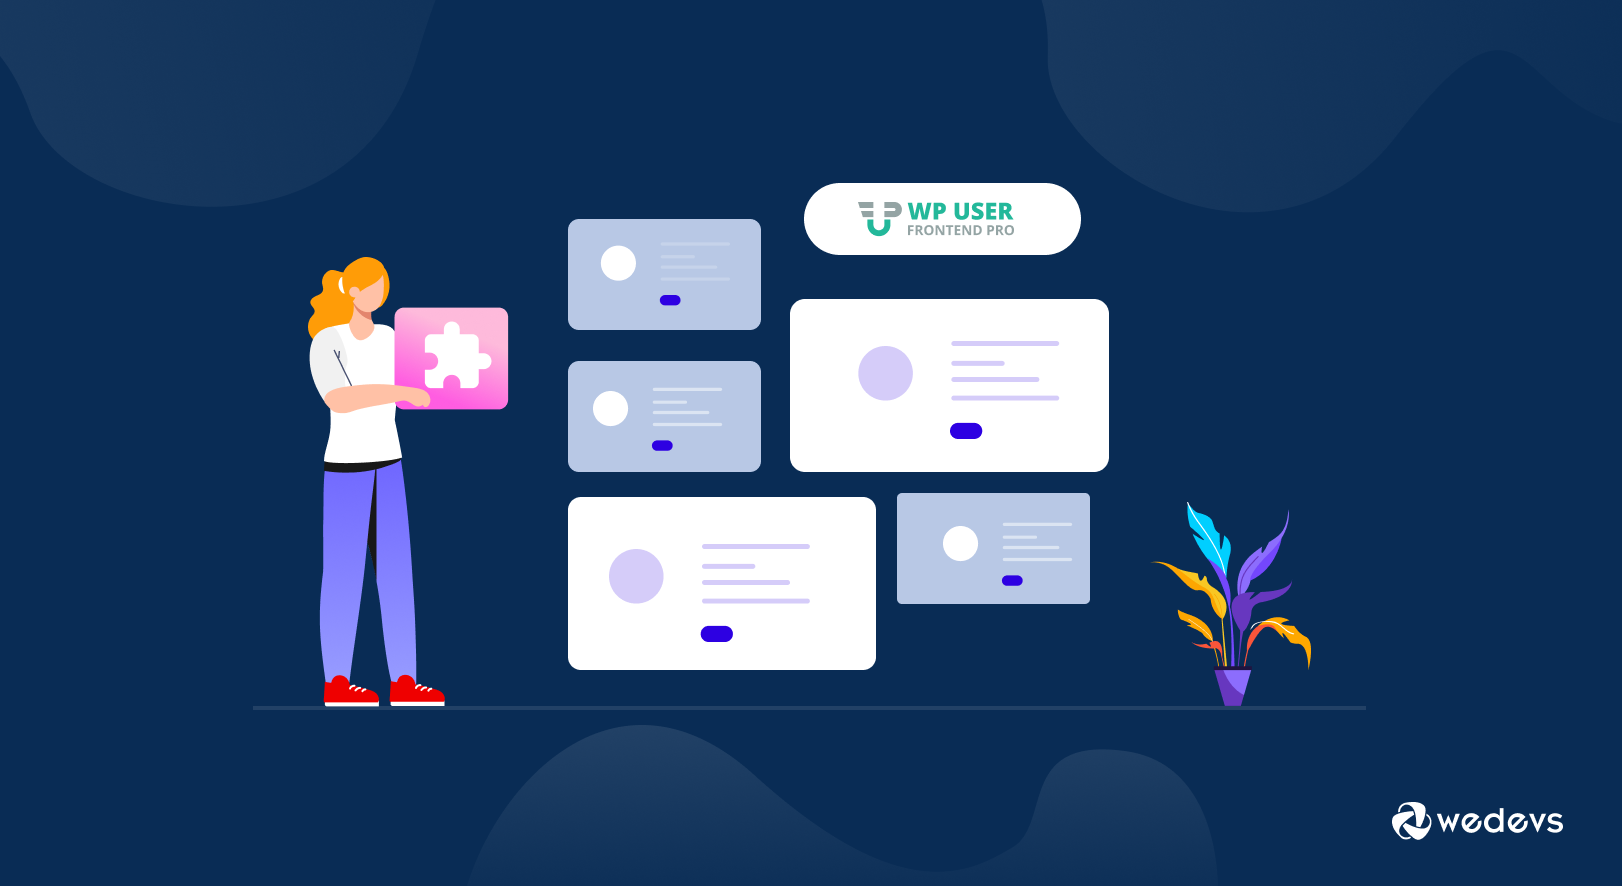 6 Hand-Picked Free Membership Management Software For WordPress Users